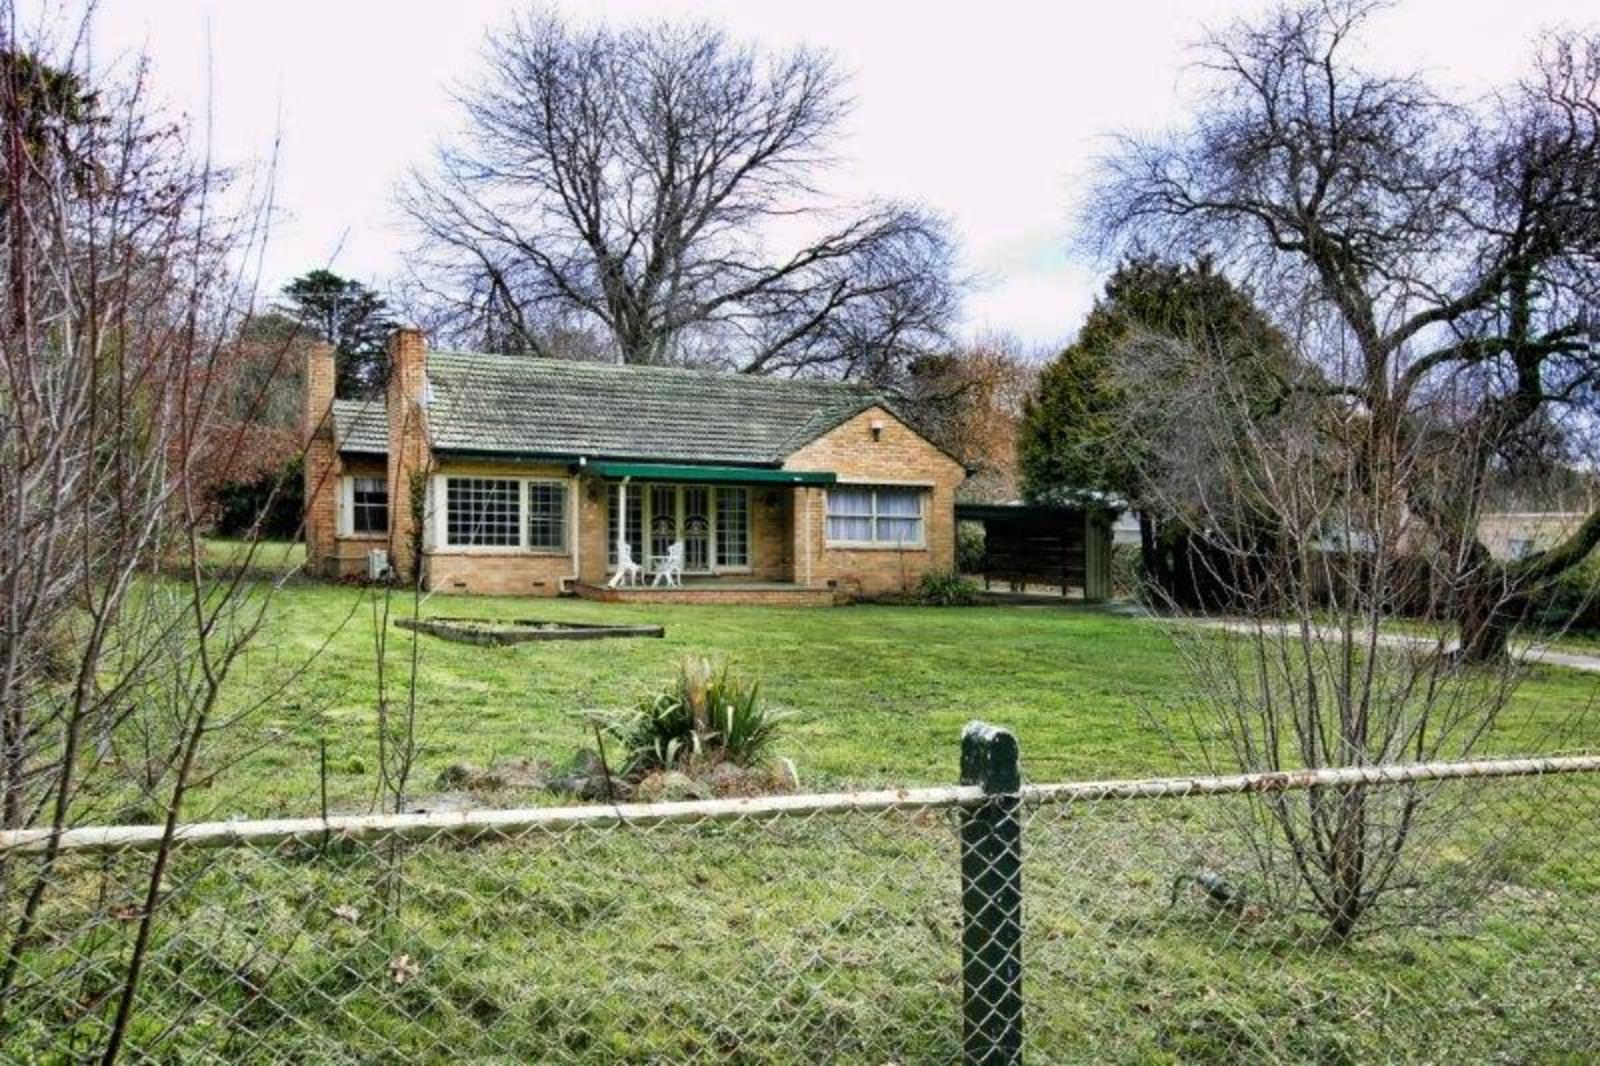 13 Old Lancefield Road, Woodend 3442 - Image 1